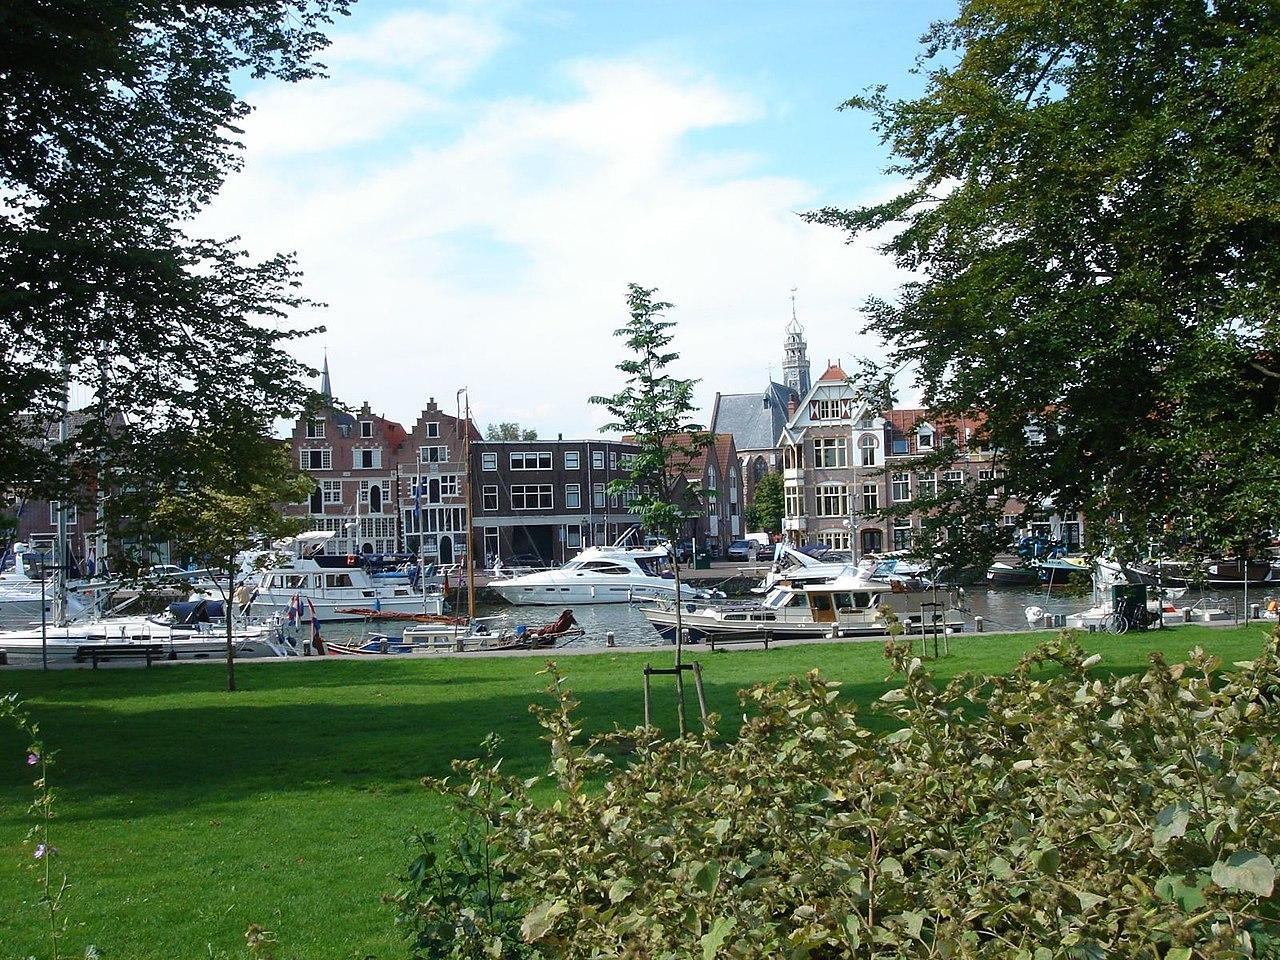 Photo Binnenhaven en Hoorn, Voir, Quartier, place, parc - #3